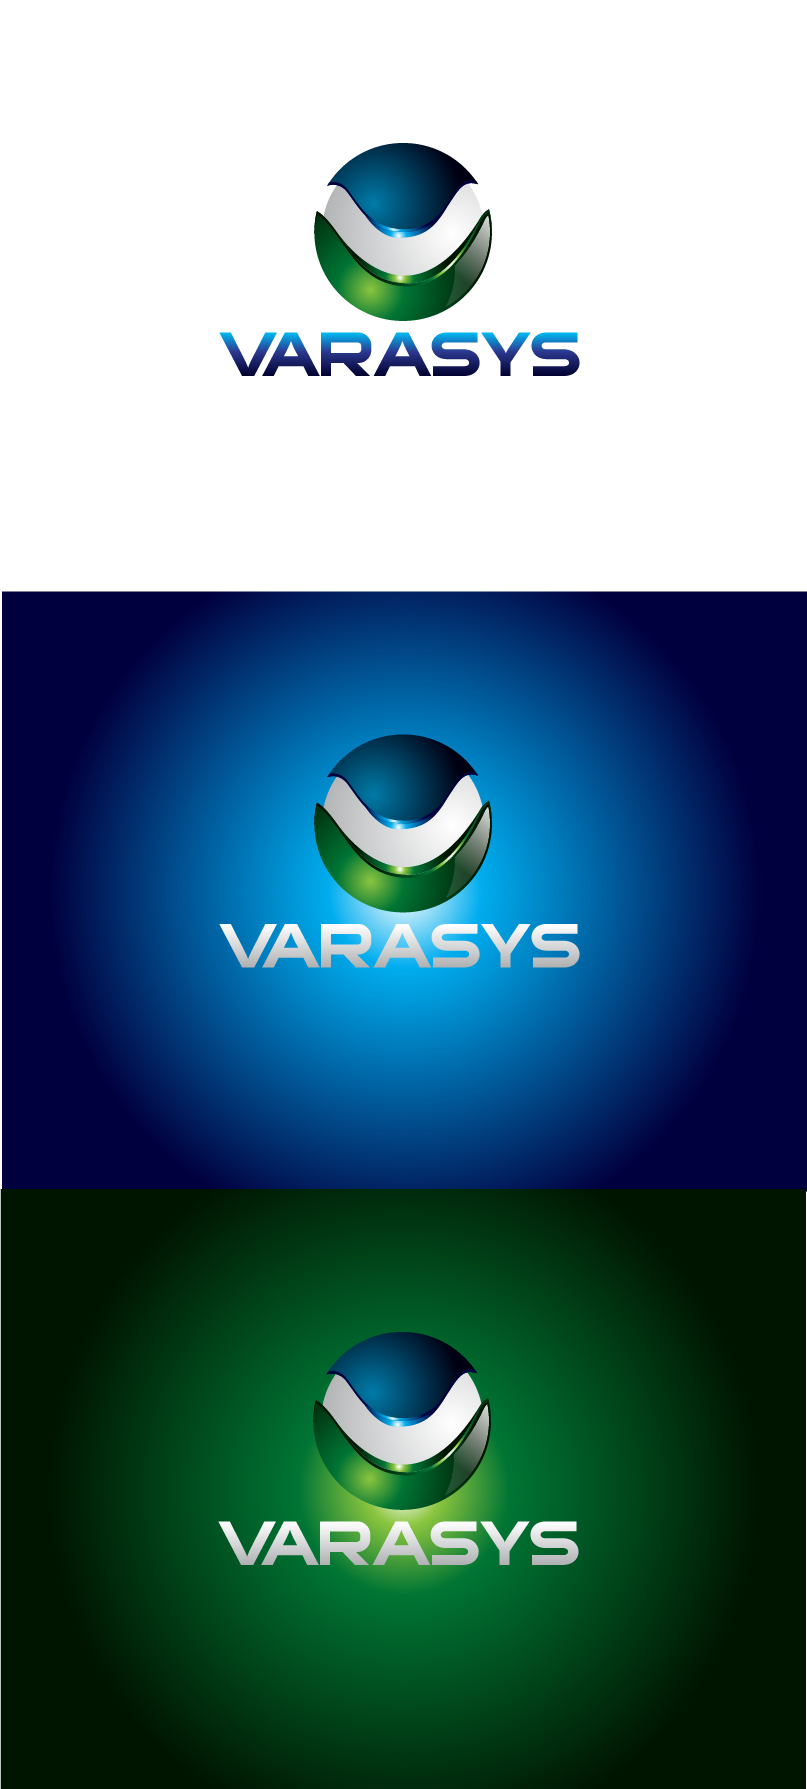 Logo Design by Private User - Entry No. 103 in the Logo Design Contest Artistic Logo Design for VARASYS Limited.